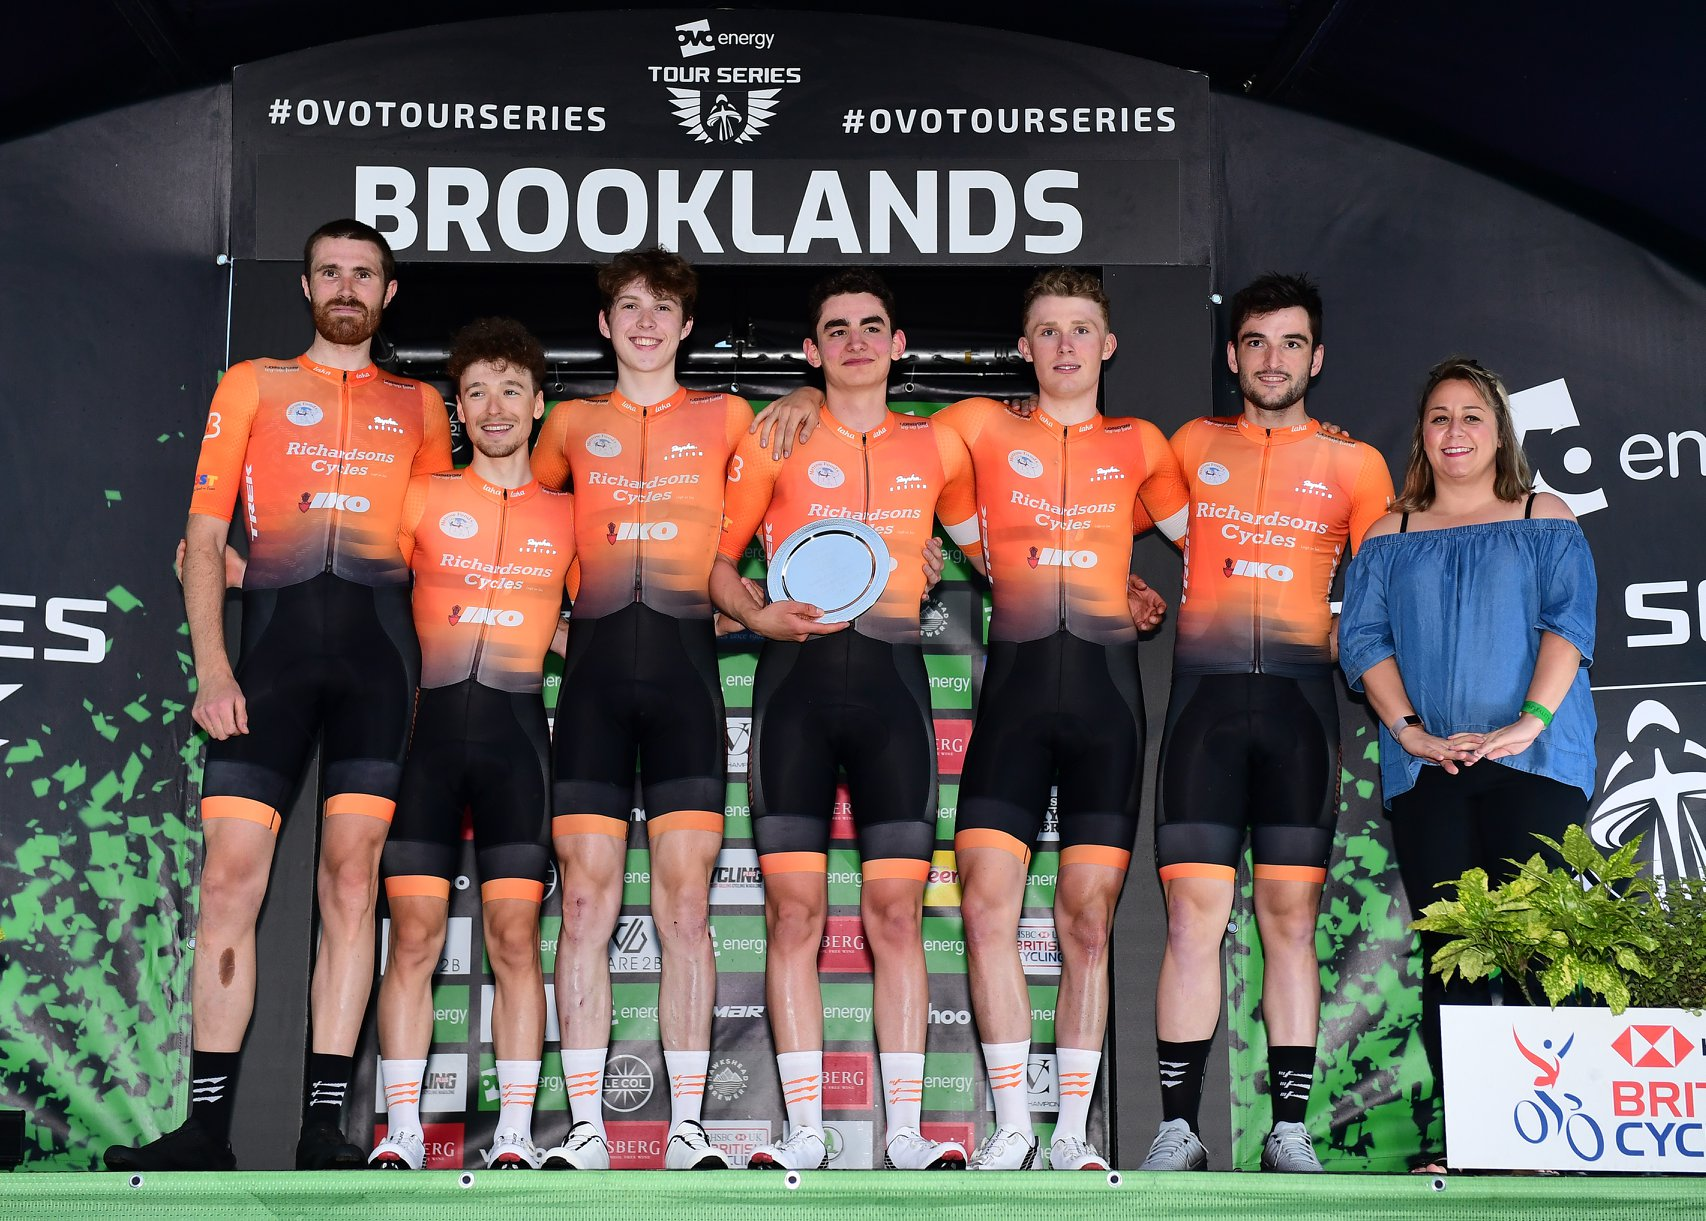 Richardsons-Trek winning the Southern Guest Team prize at the 2019 Tour Series presentation at Brooklands